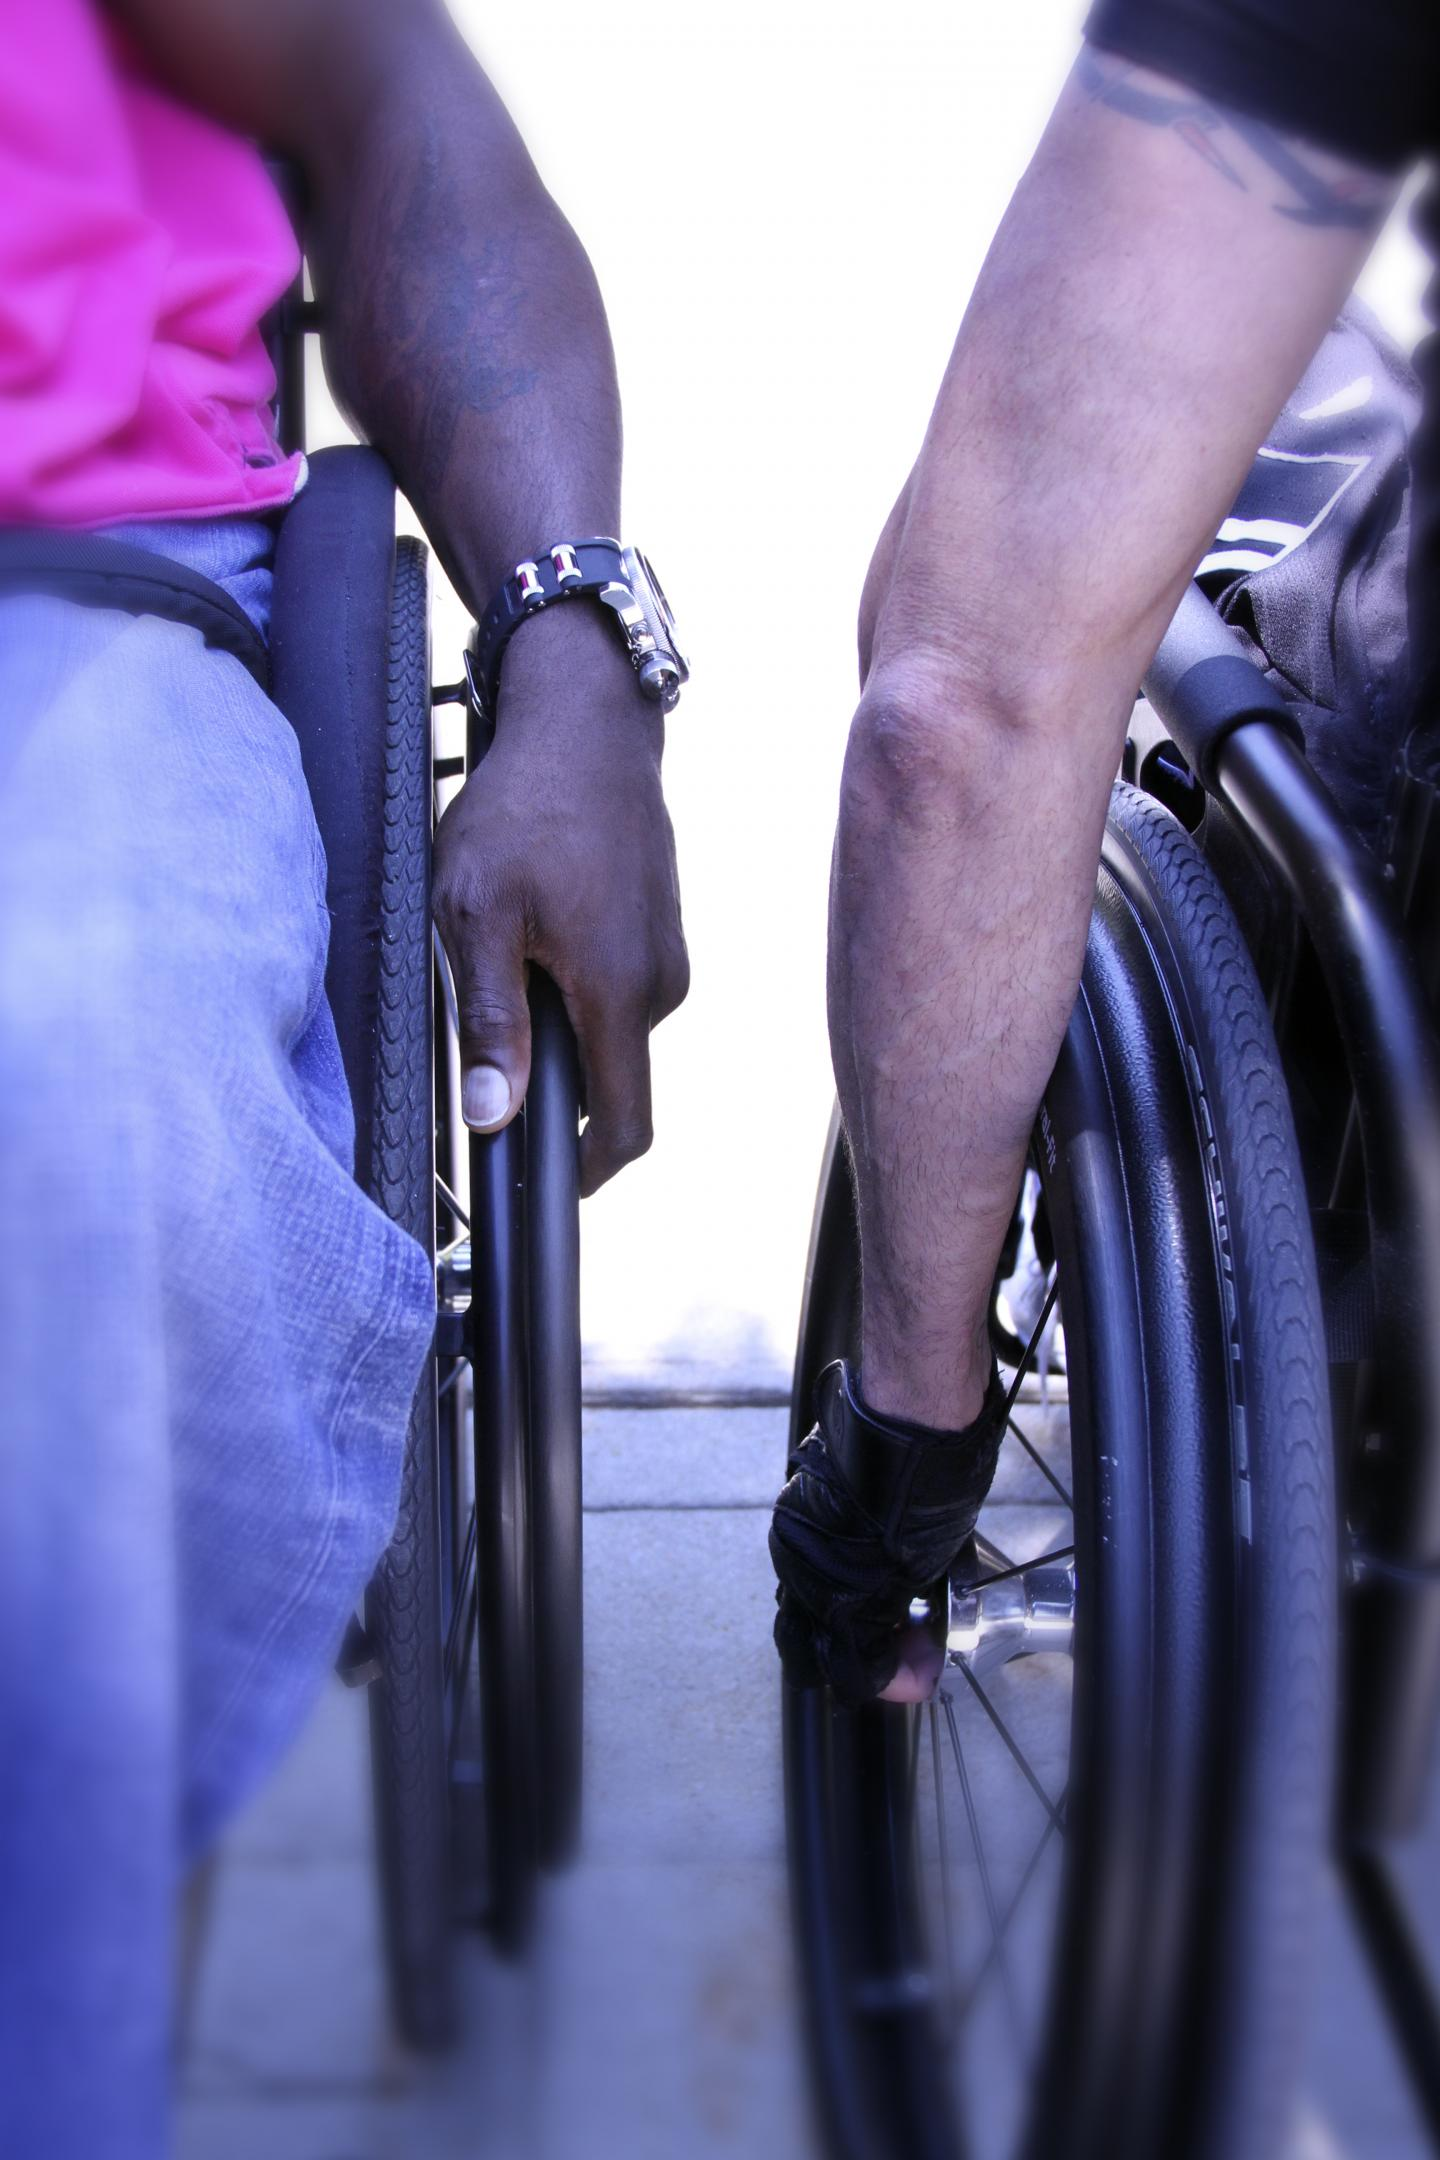 A pair of manual wheelchair users at Kessler Foundation.